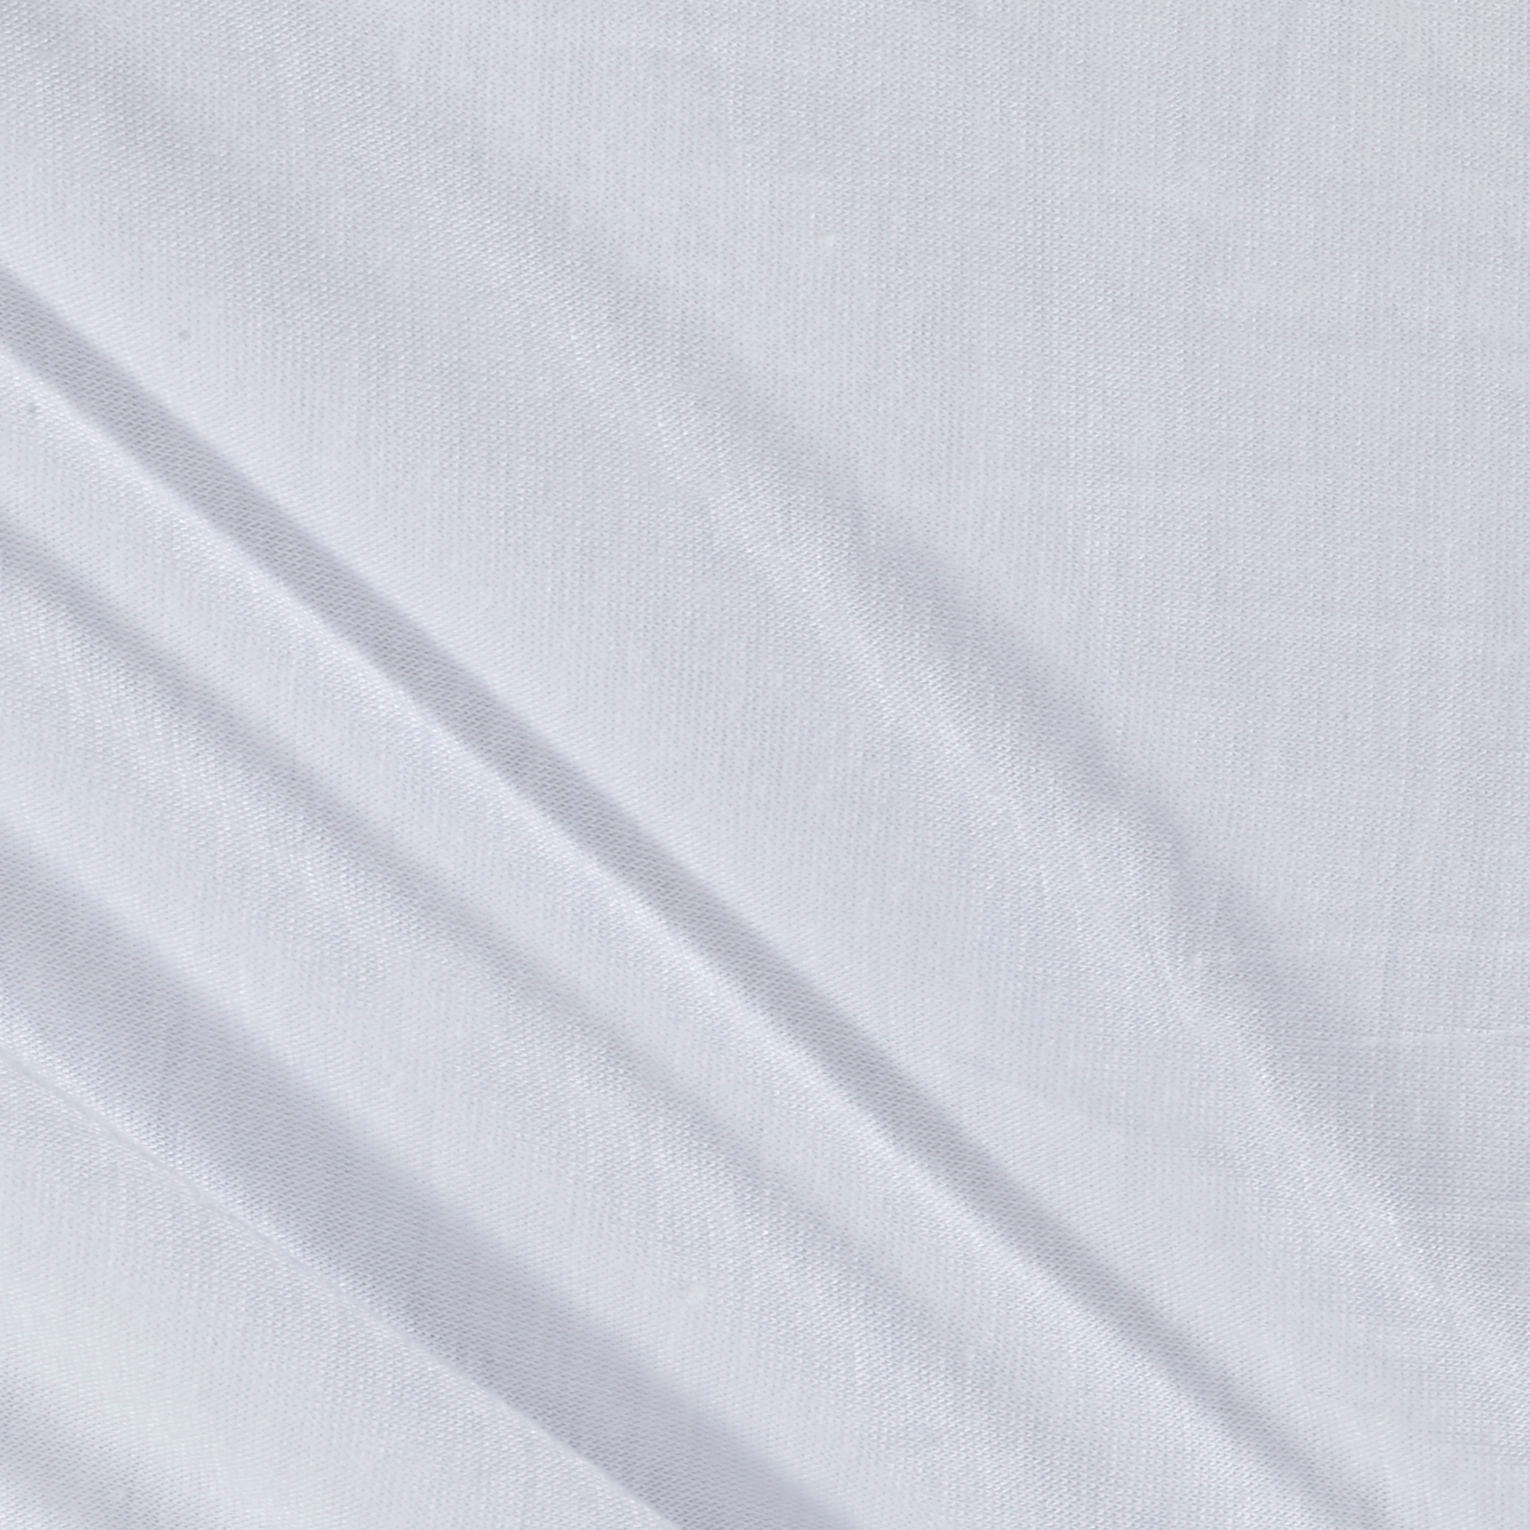 Rayon Spandex Jersey Knit White PFP Fabric Style 451838 by Stardom Specialty in USA